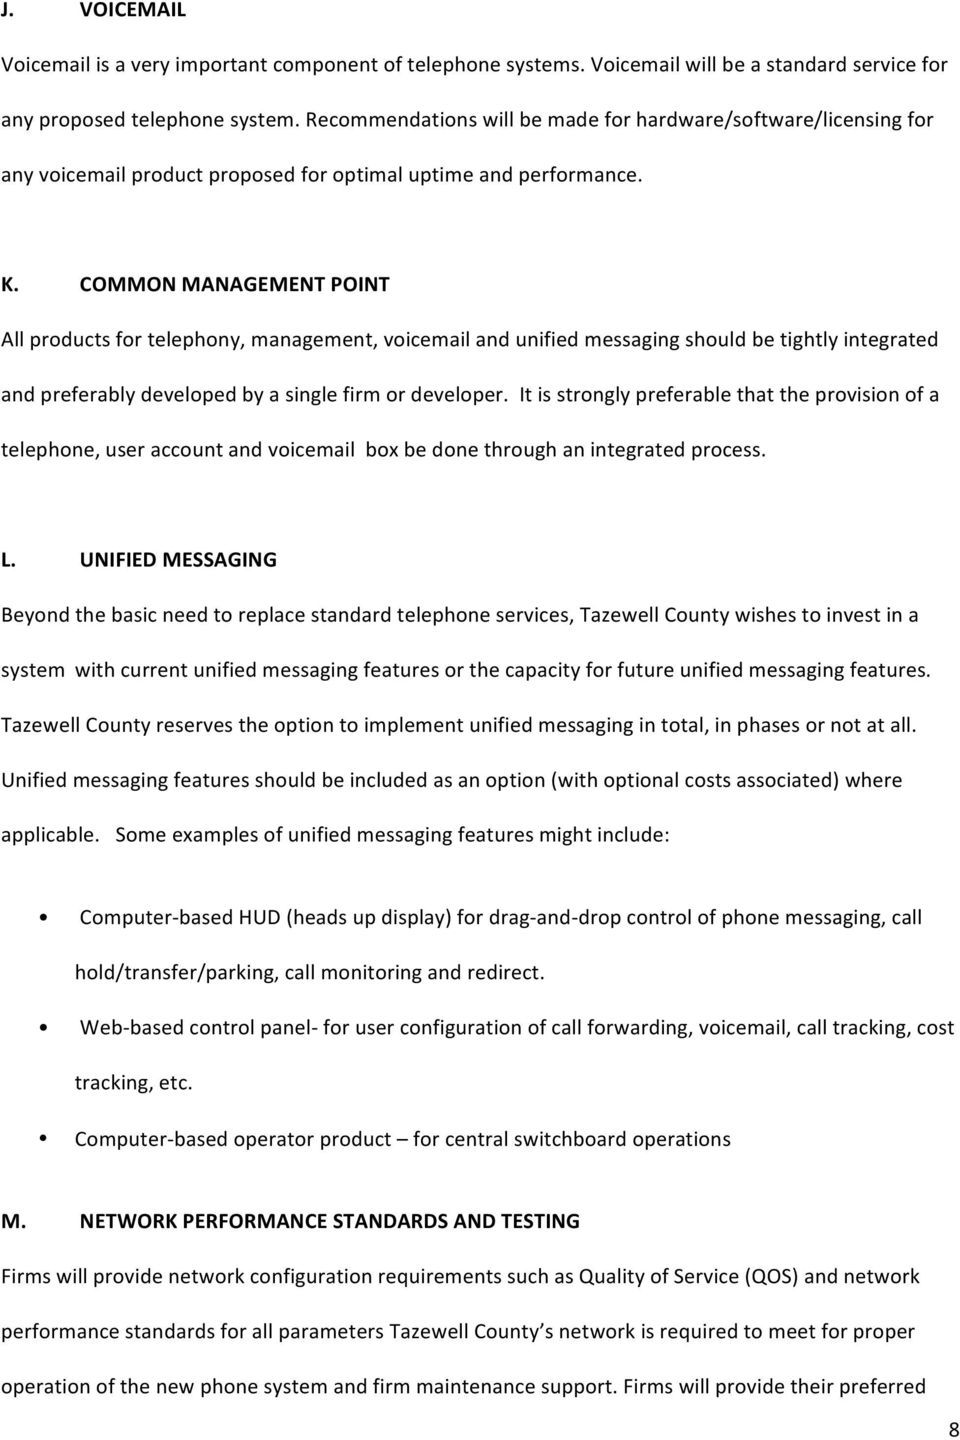 COMMON MANAGEMENT POINT All products for telephony, management, voicemail and unified messaging should be tightly integrated and preferably developed by a single firm or developer.